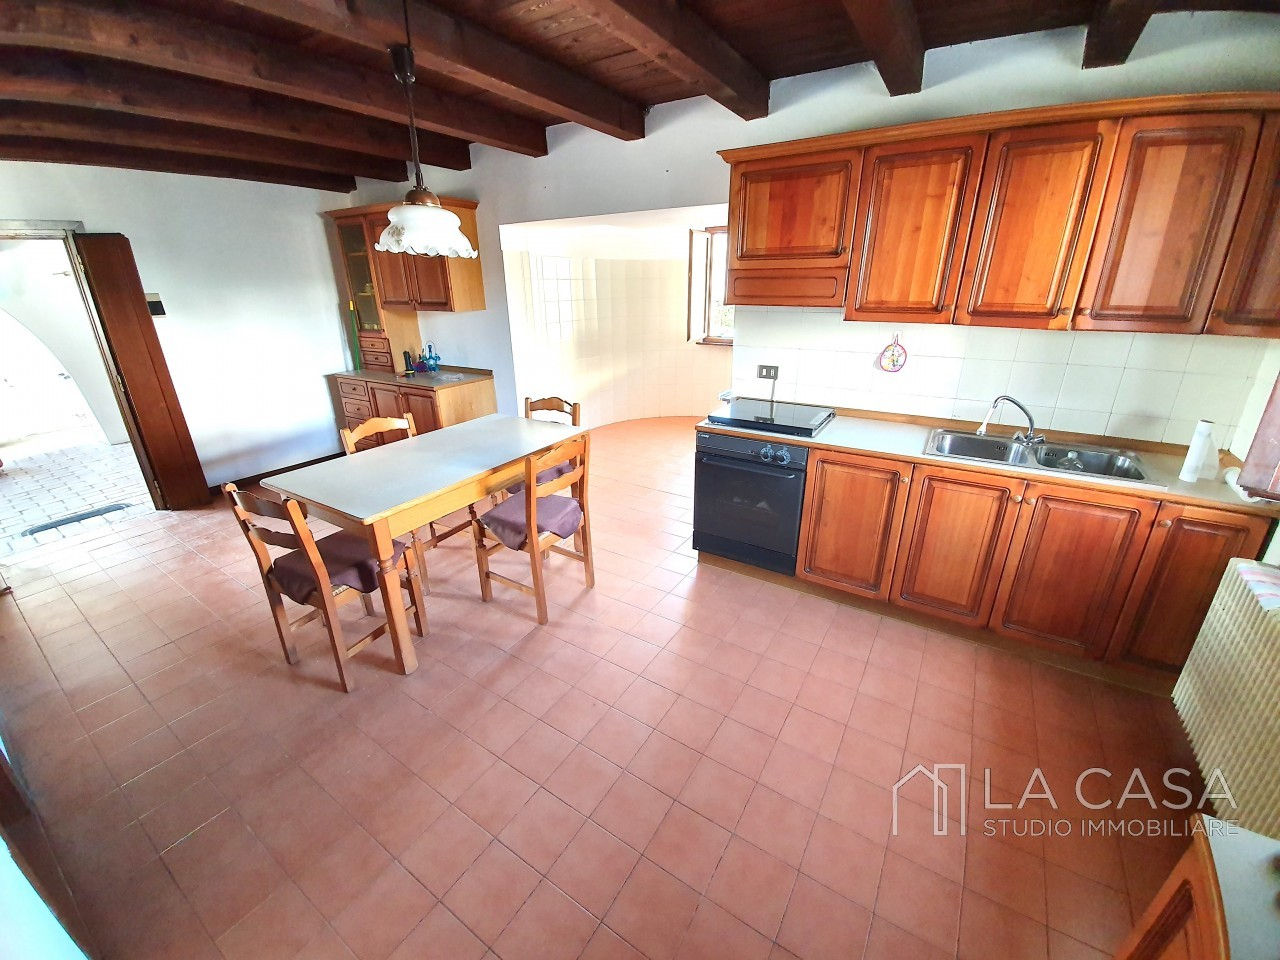 Casa indipendente in Linea - Rif.C6 https://images.gestionaleimmobiliare.it/foto/annunci/191125/2114313/1280x1280/004__20191125_115523_wmk_0.jpg